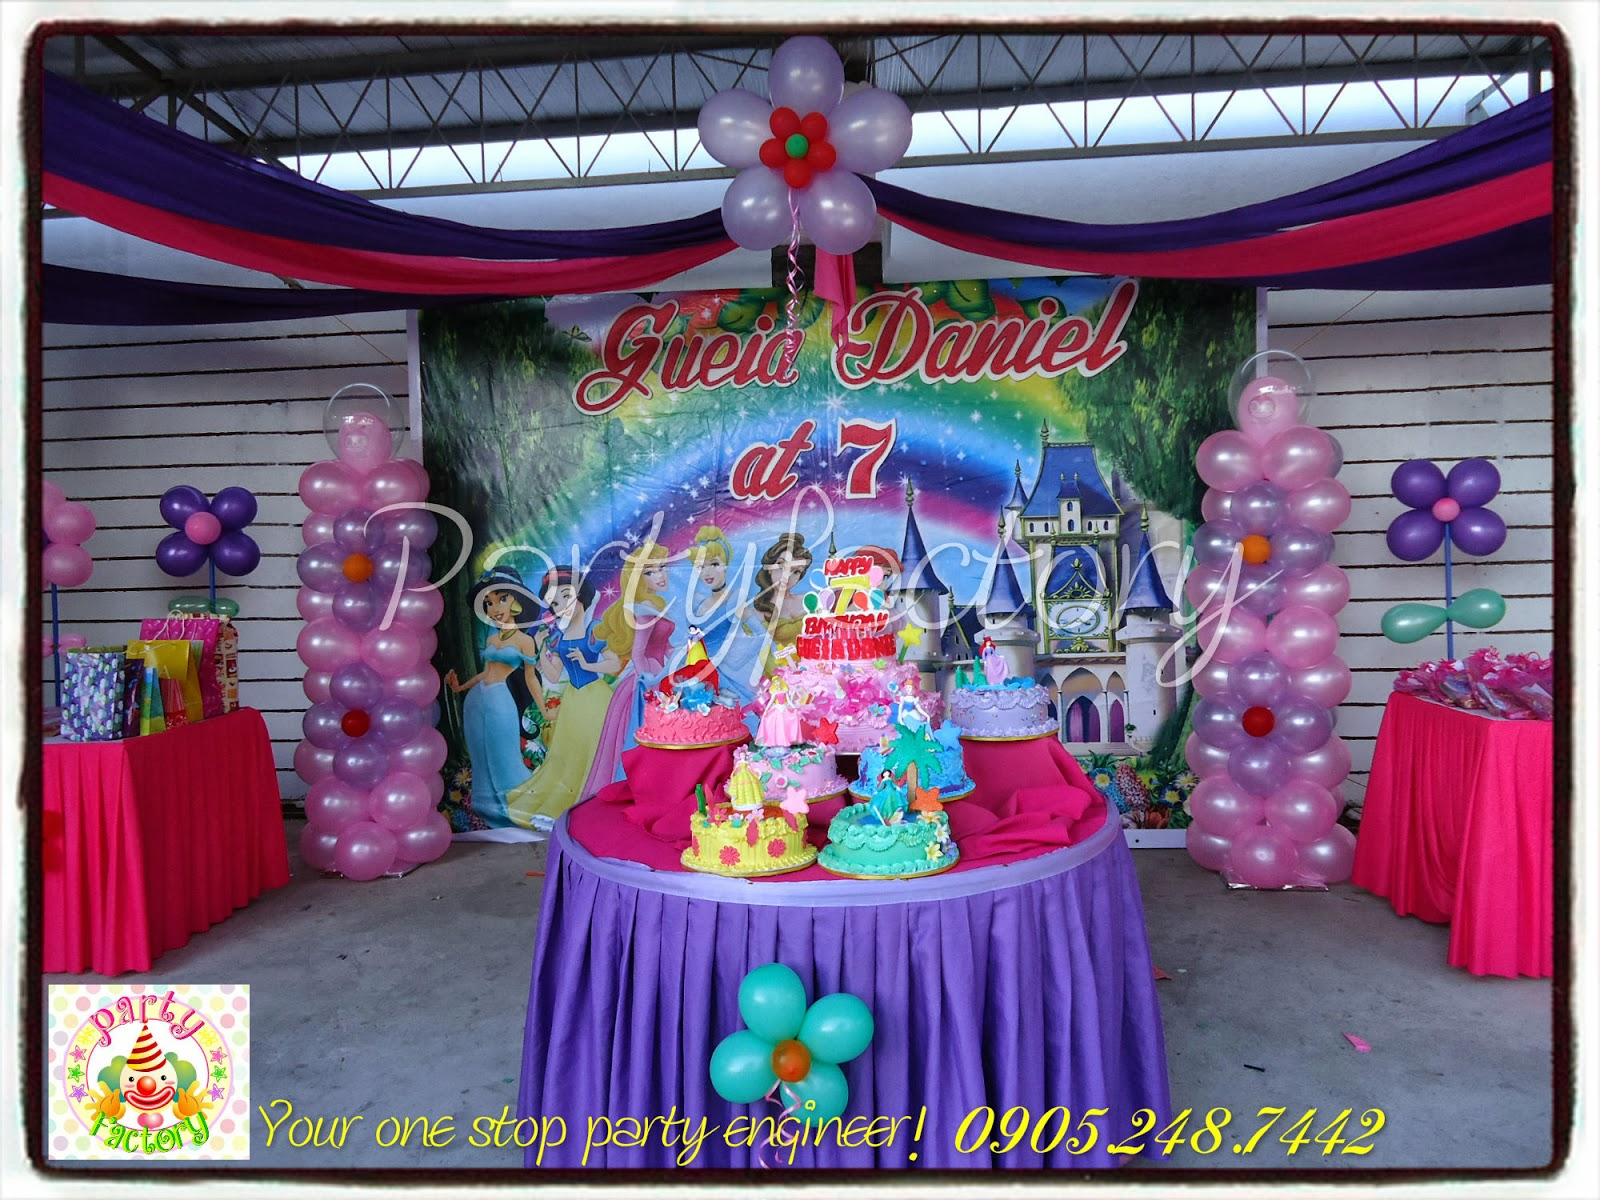 Welcome to PartyFactory Cebu: GUEIA DANIELS' 7th BIRTHDAY